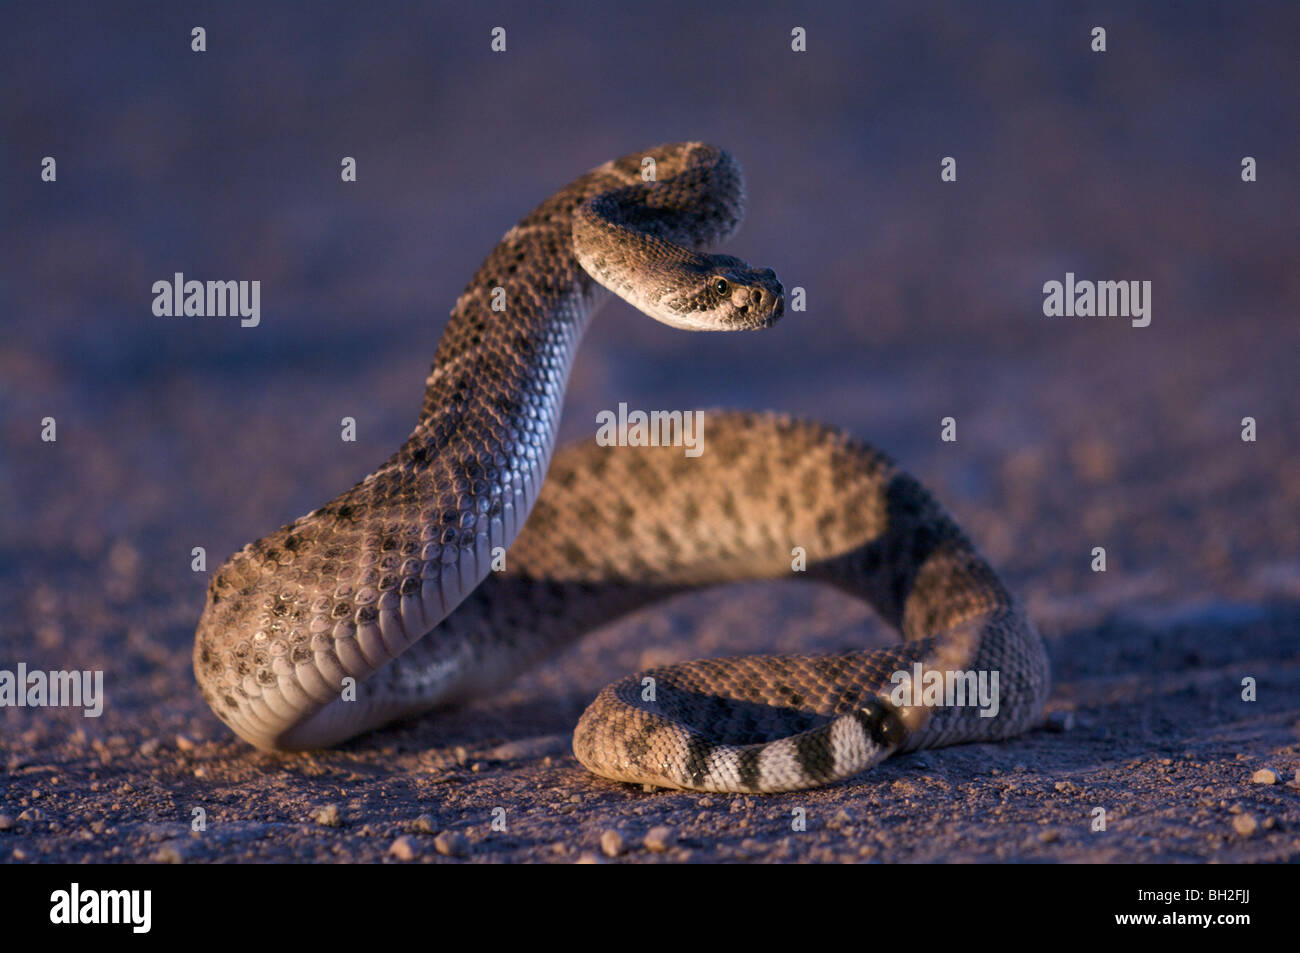 A Western Diamond-backed Rattlesnake (Crotalus atrox) in a defensive posture at dusk, illuminated by car headlights. Stock Photo